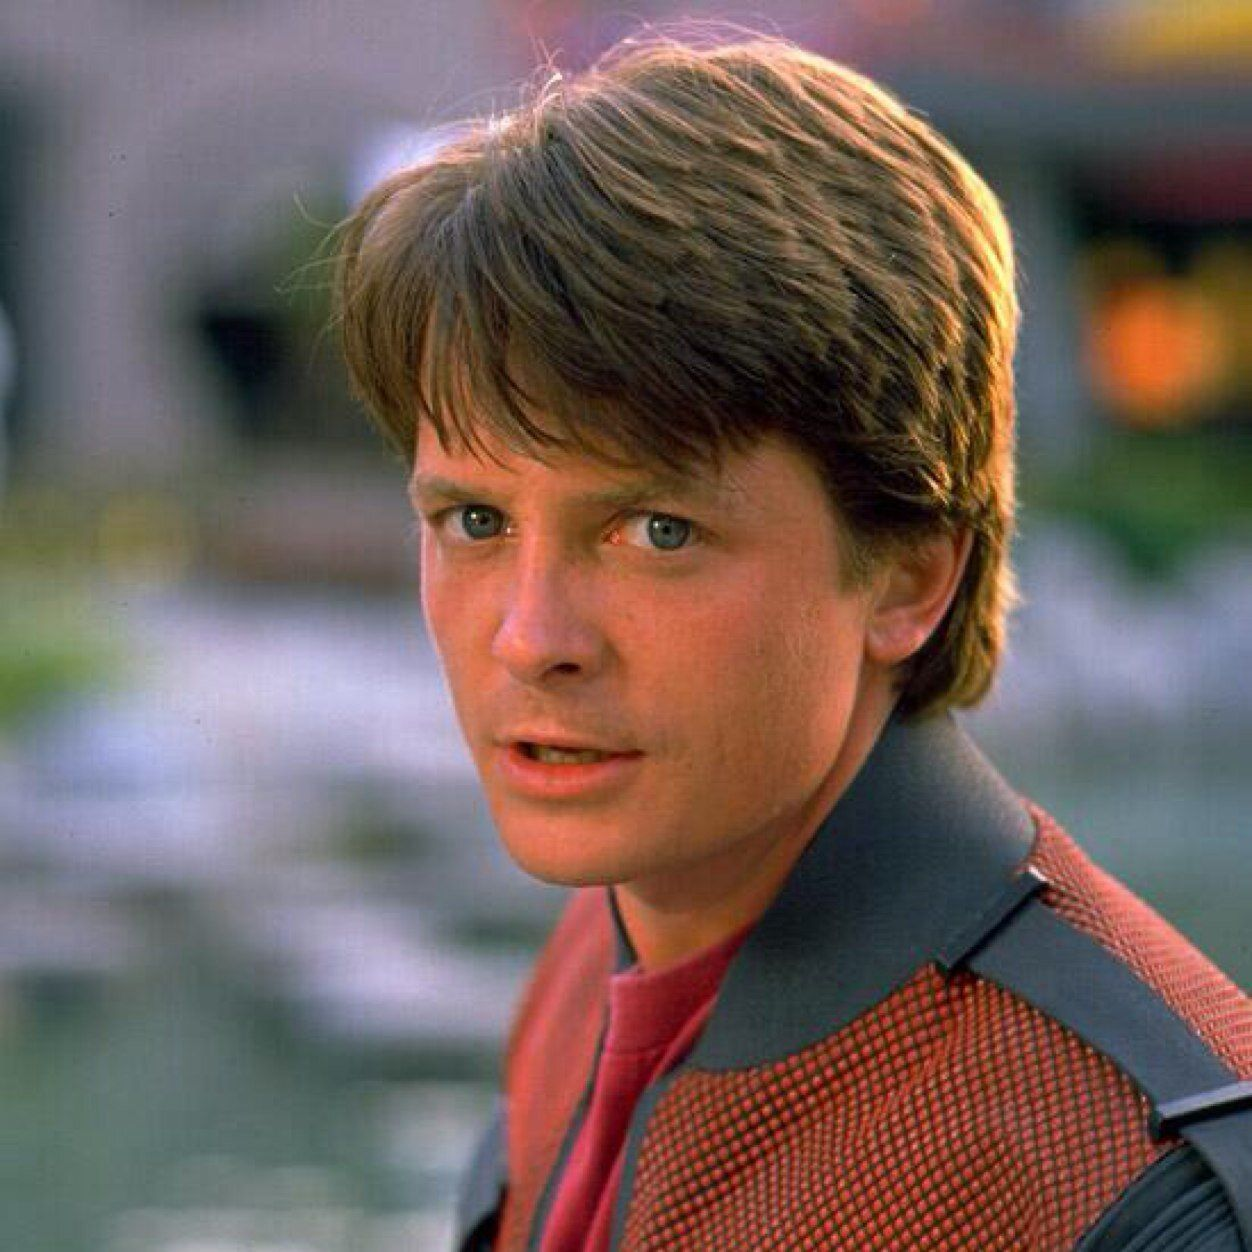 Michael J Fox As Marty Mcfly Jr Movie Back To The Future